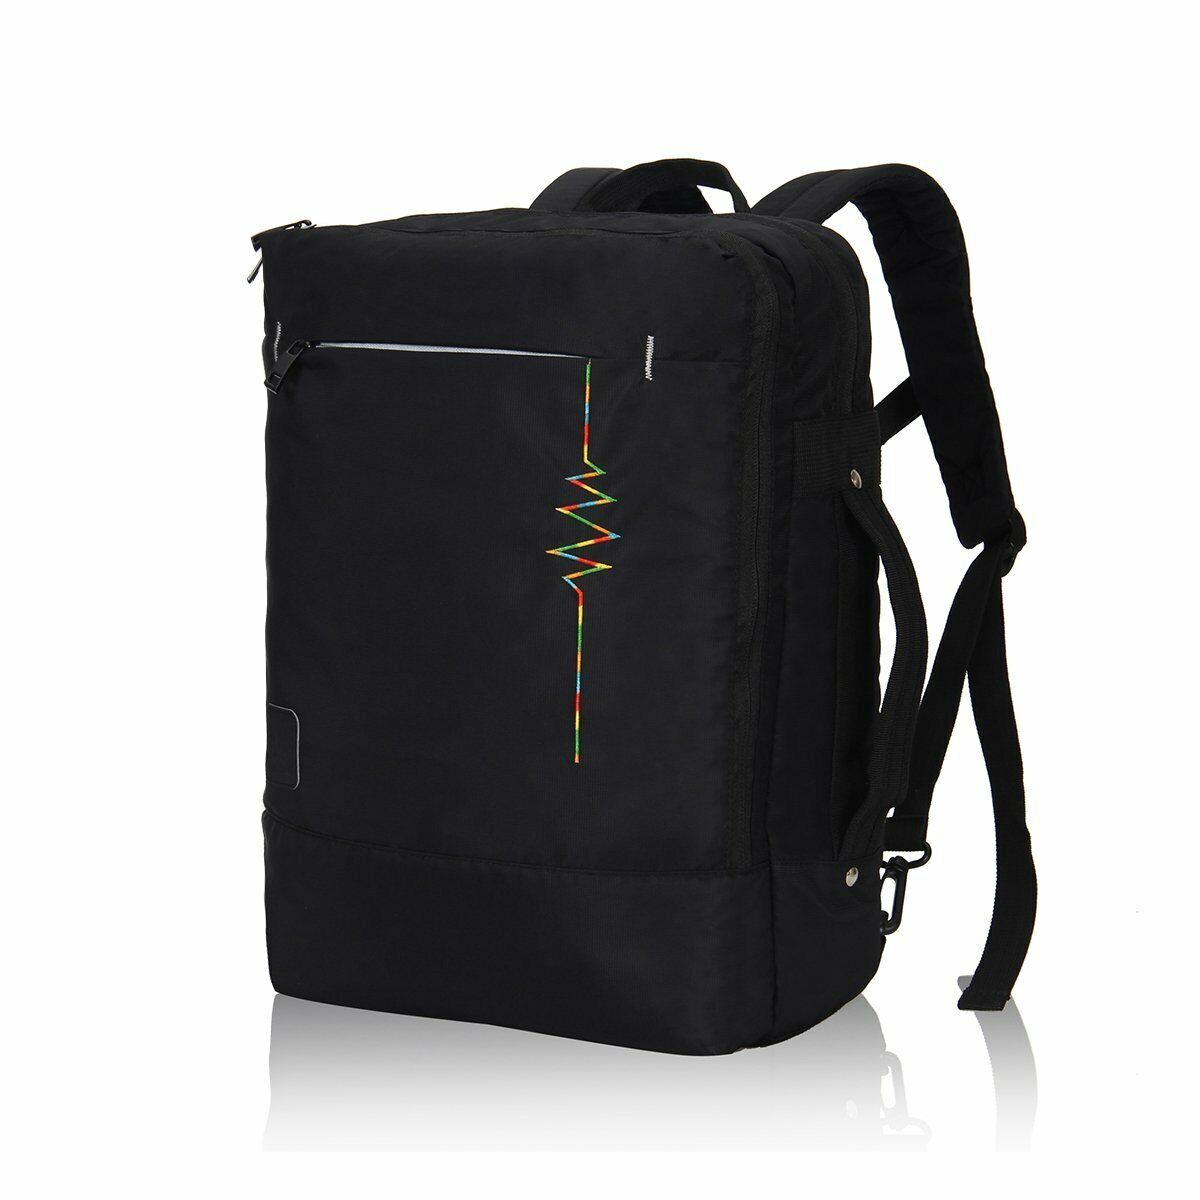 Hynes Eagle Minimalist City Backpack for Up to 15.6 inch Lap